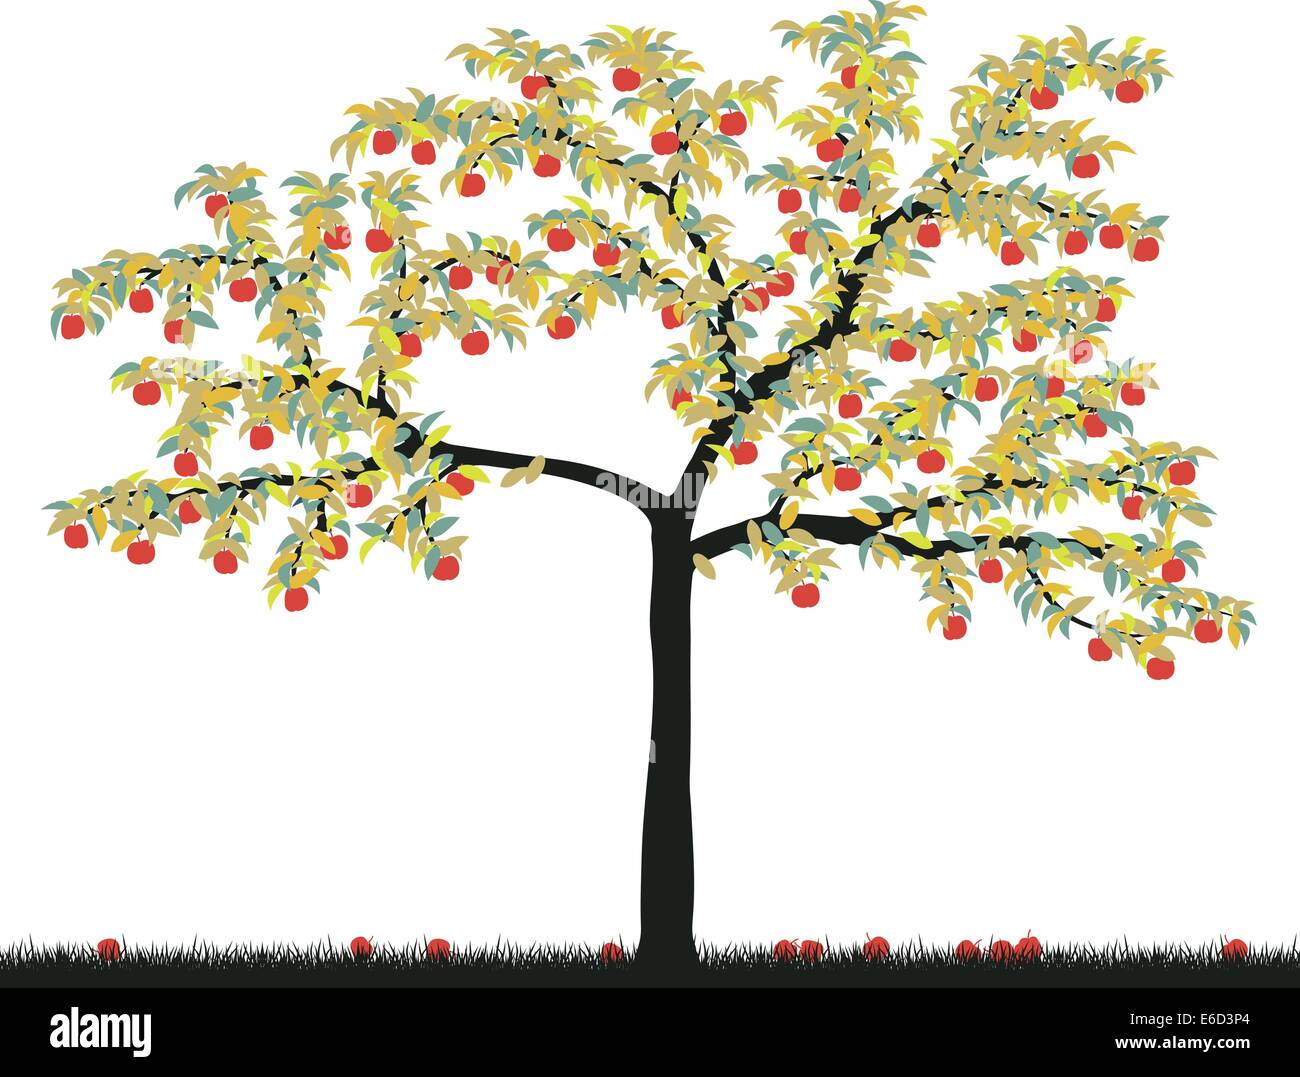 Editable vector illustration of a colorful apple tree - Stock Vector